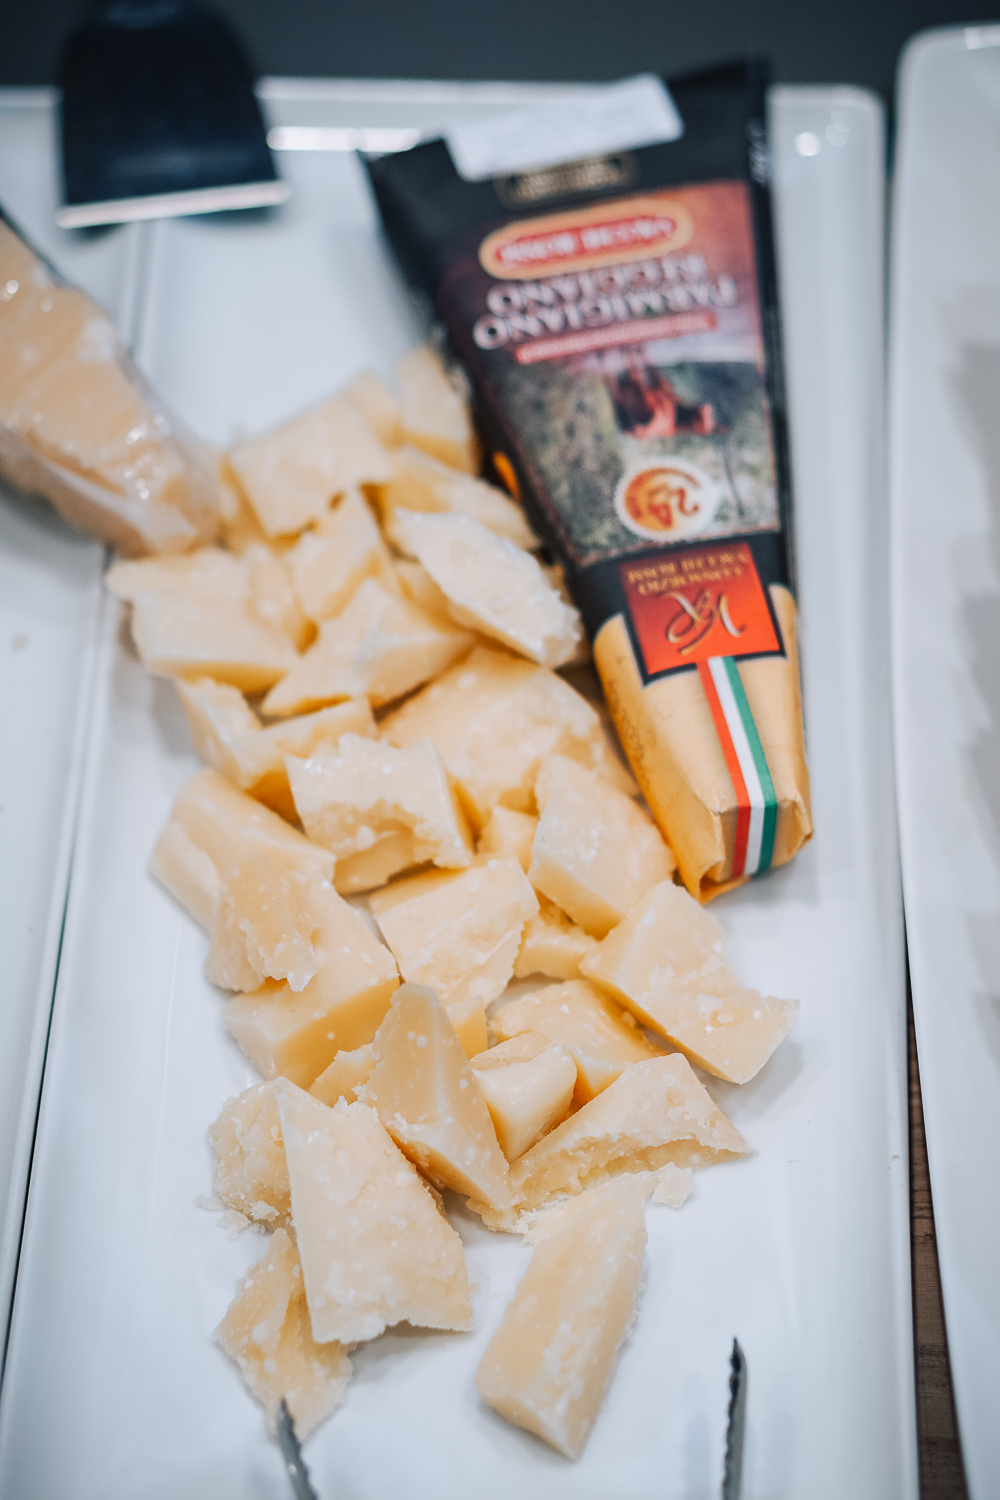 Parmigiano Reggiano, Italian cooking class at Eataly in London